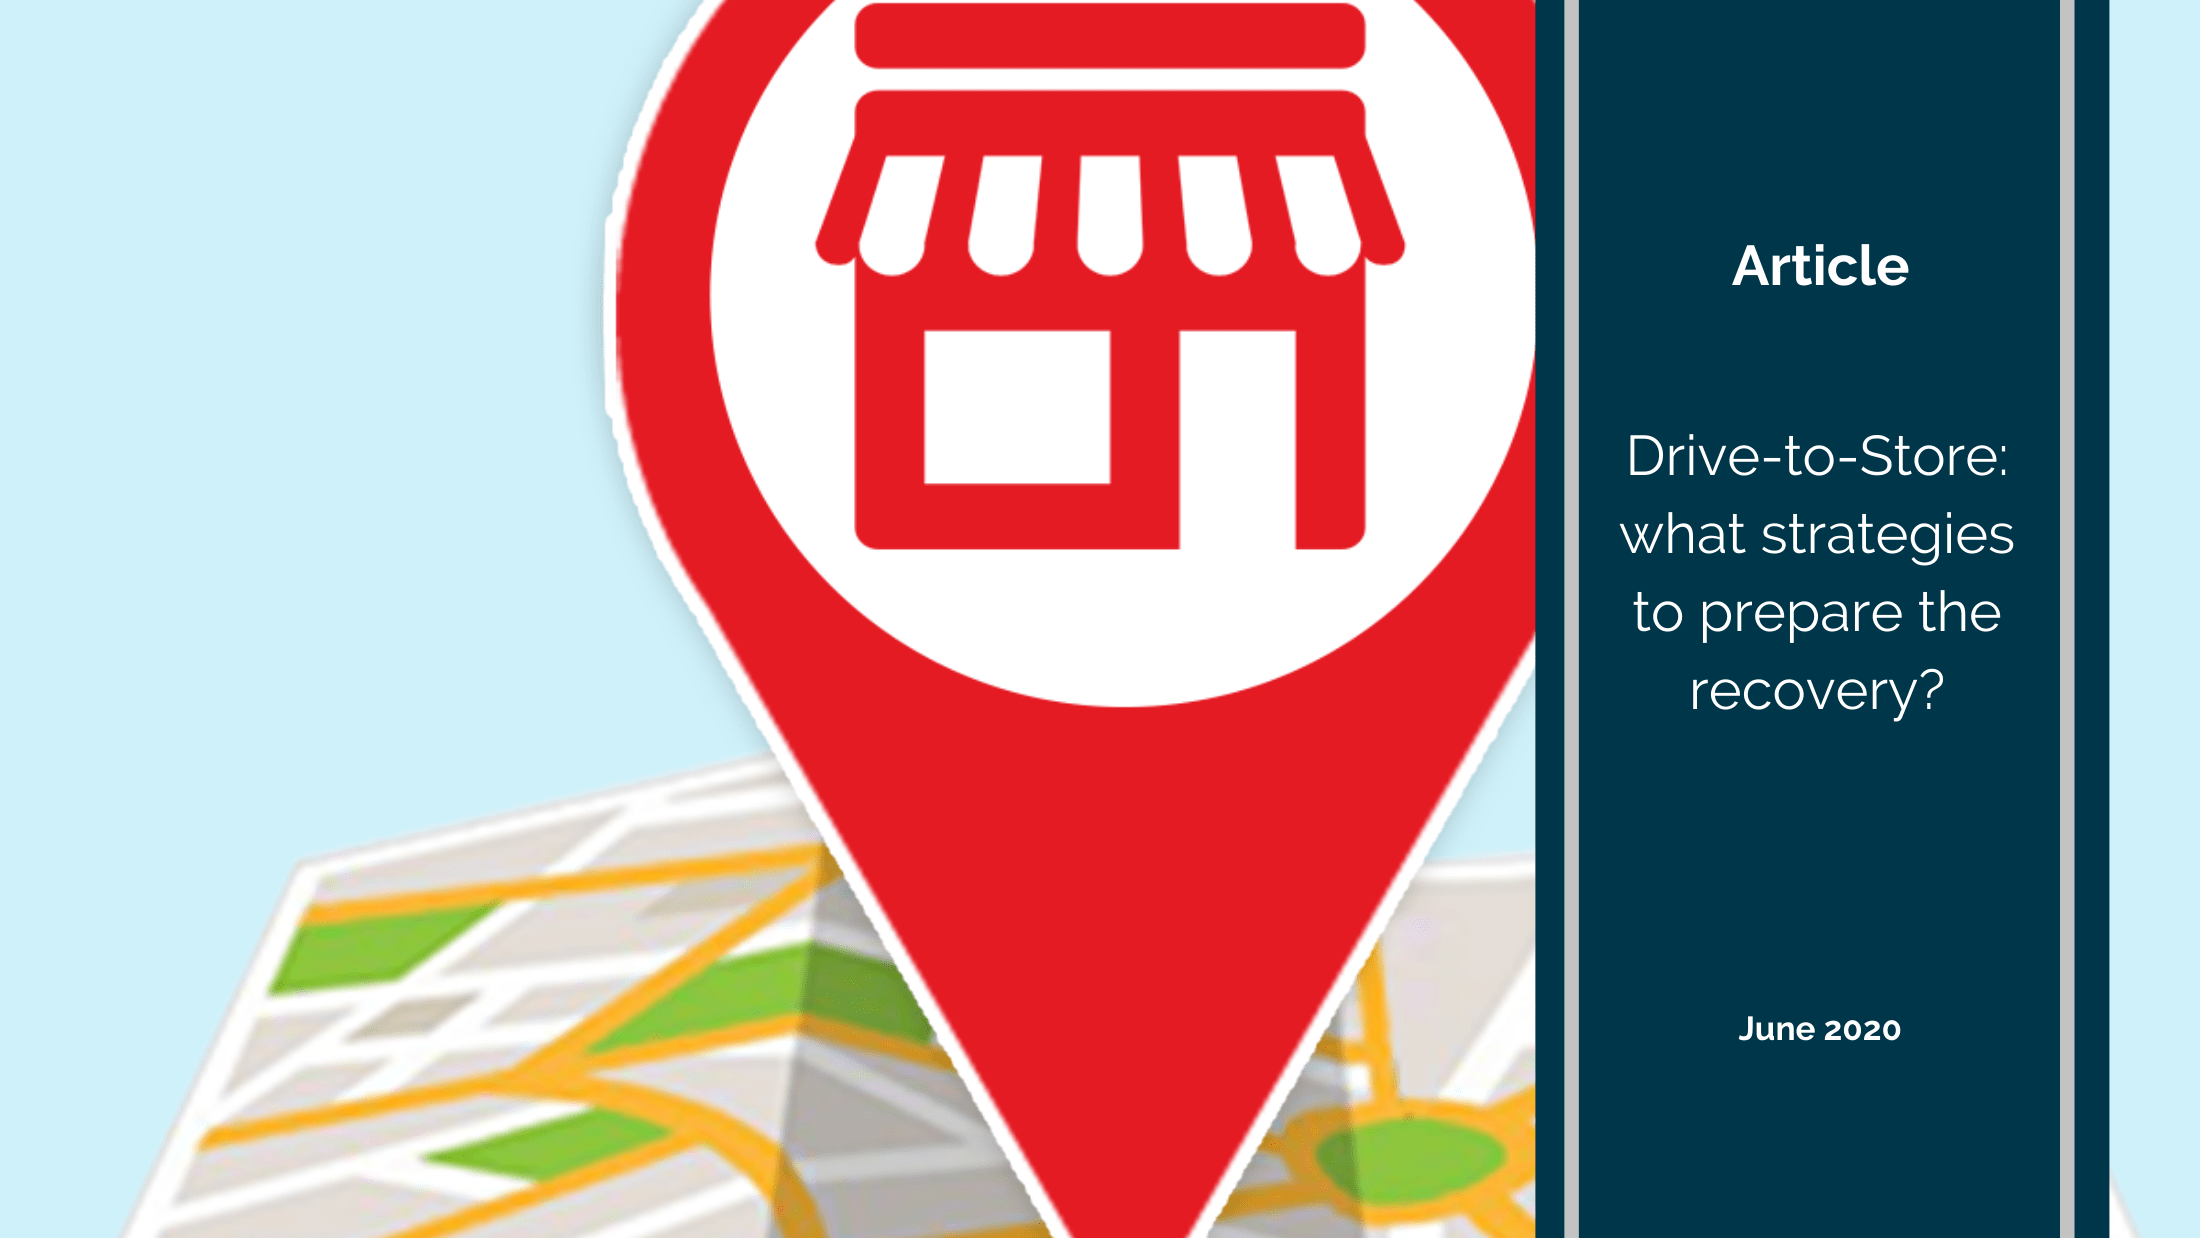 Expérience client 9 - Drive-to-store: what strategies to prepare the recovery?